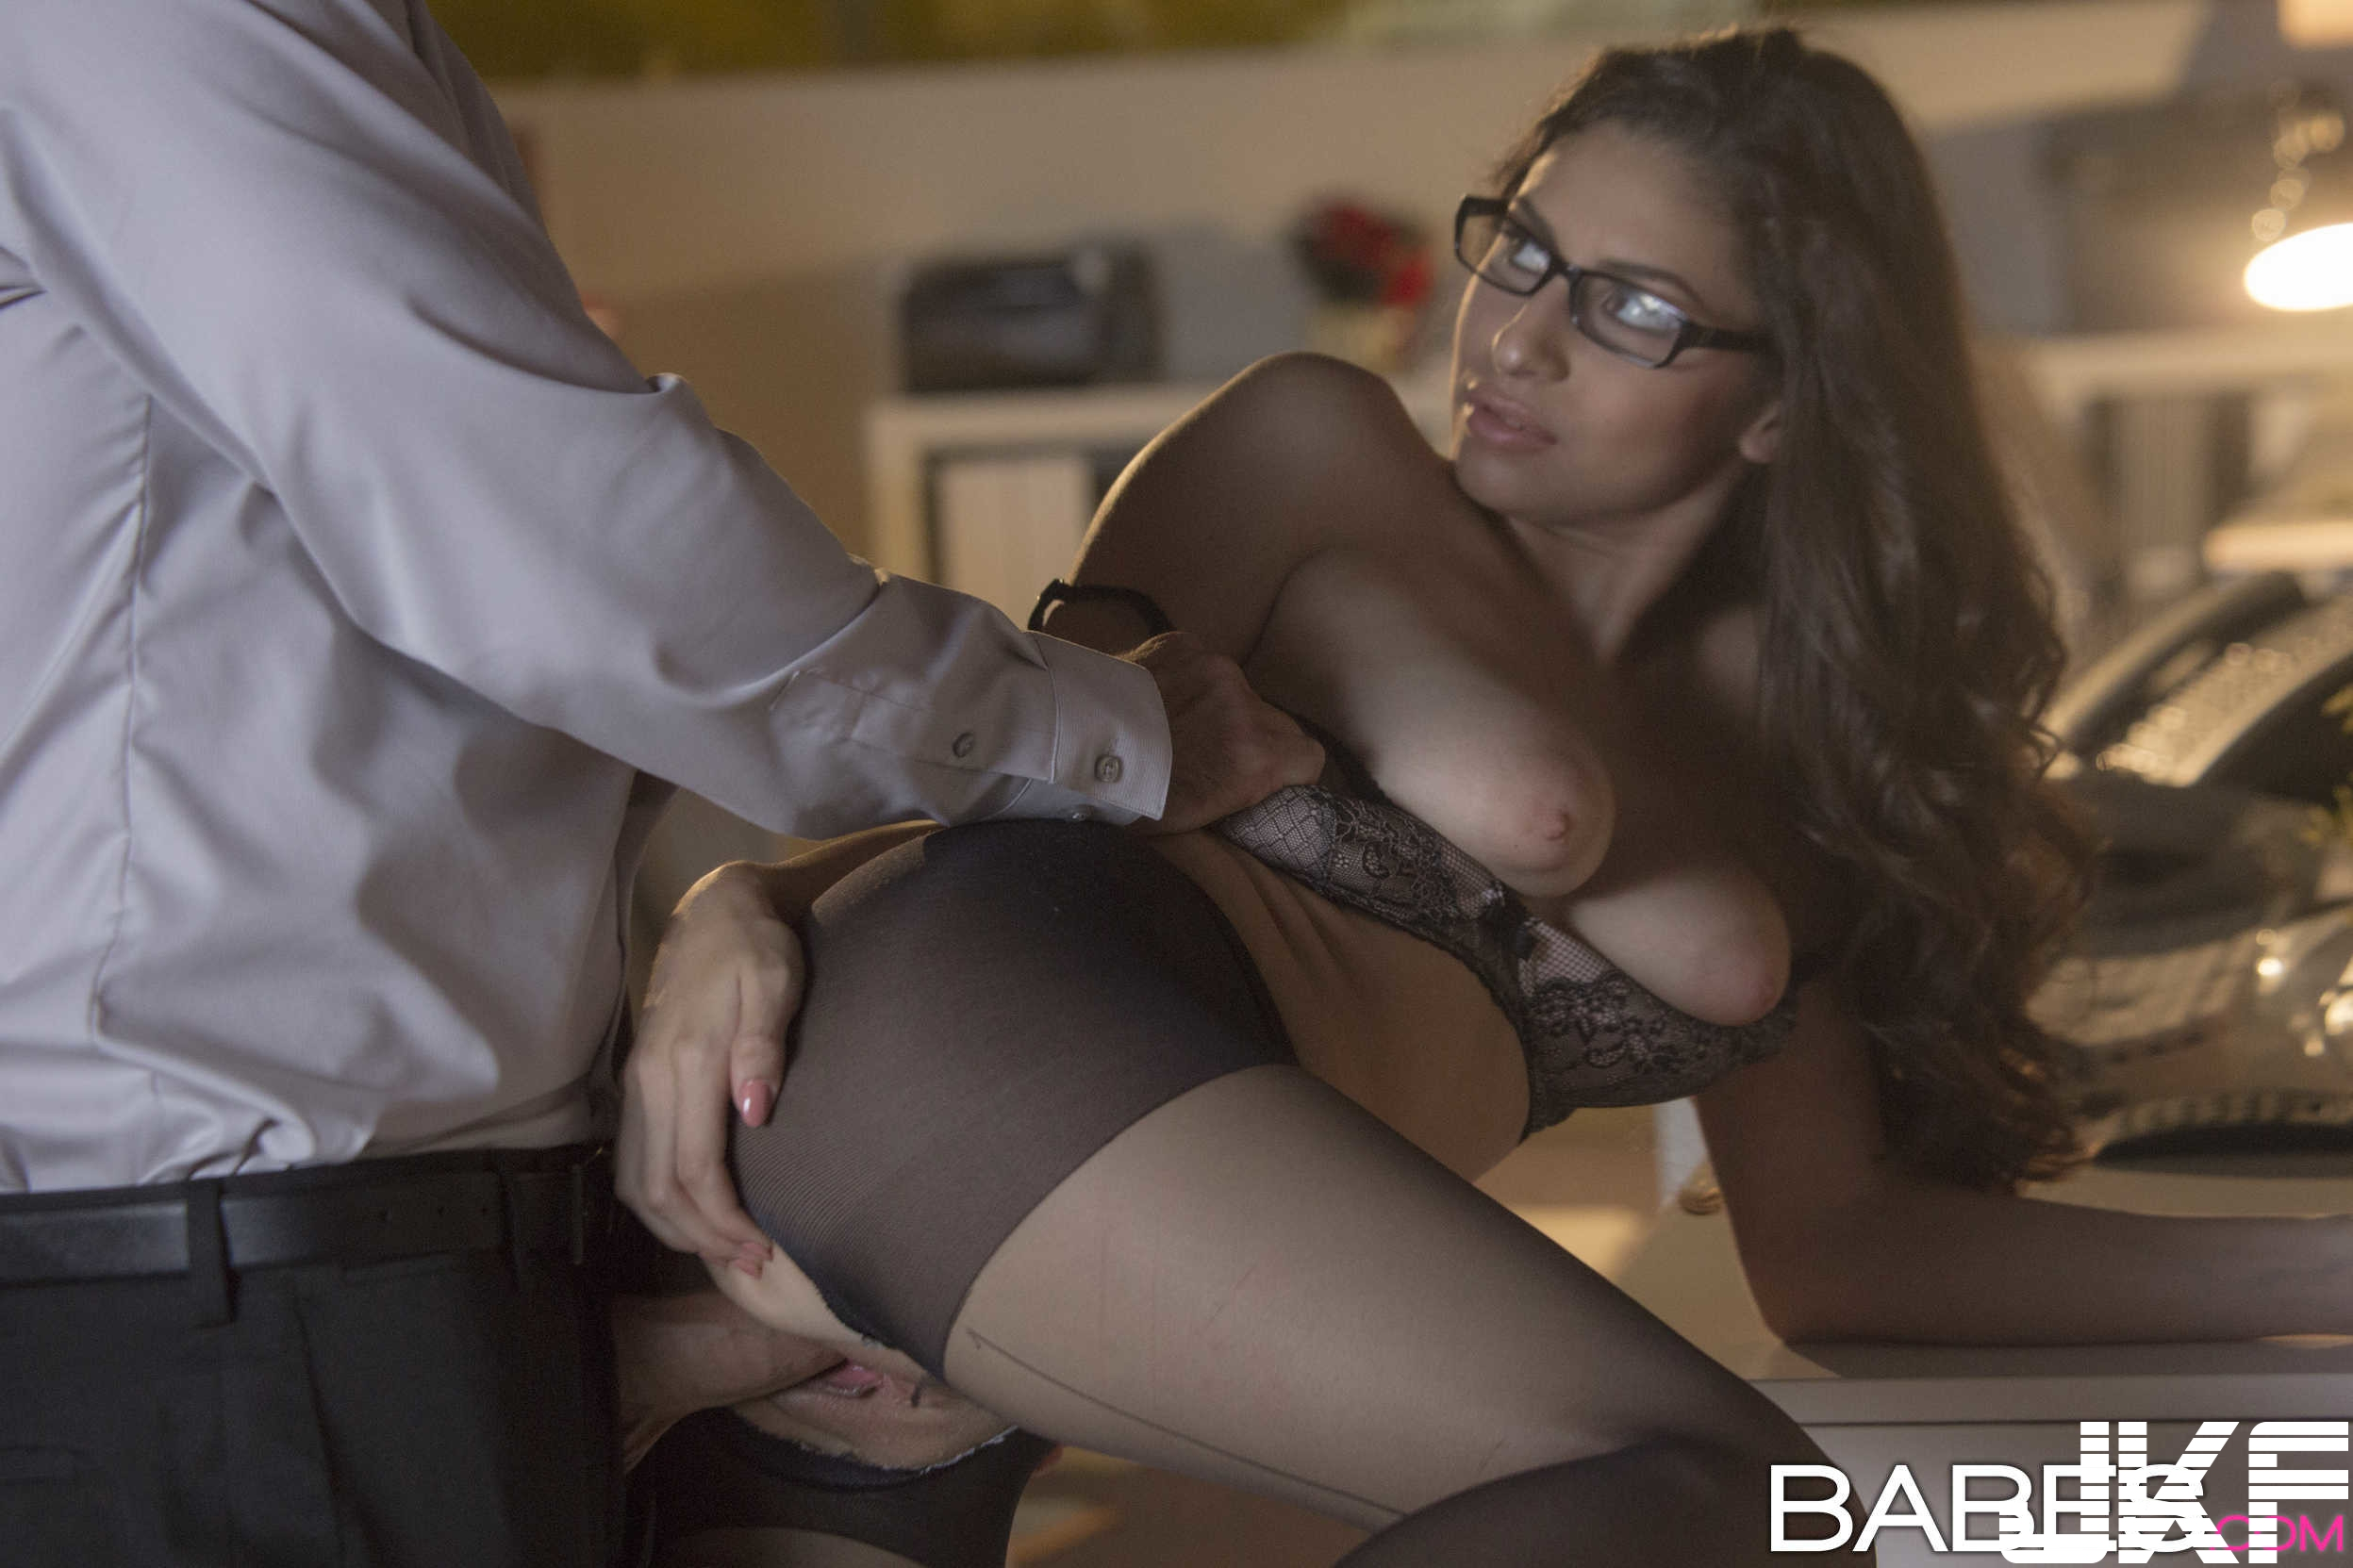 Shaved-Brunette-Nina-North-Wearing-Garter-Belt-in-Office-Giving-Blowjob-2.jpg